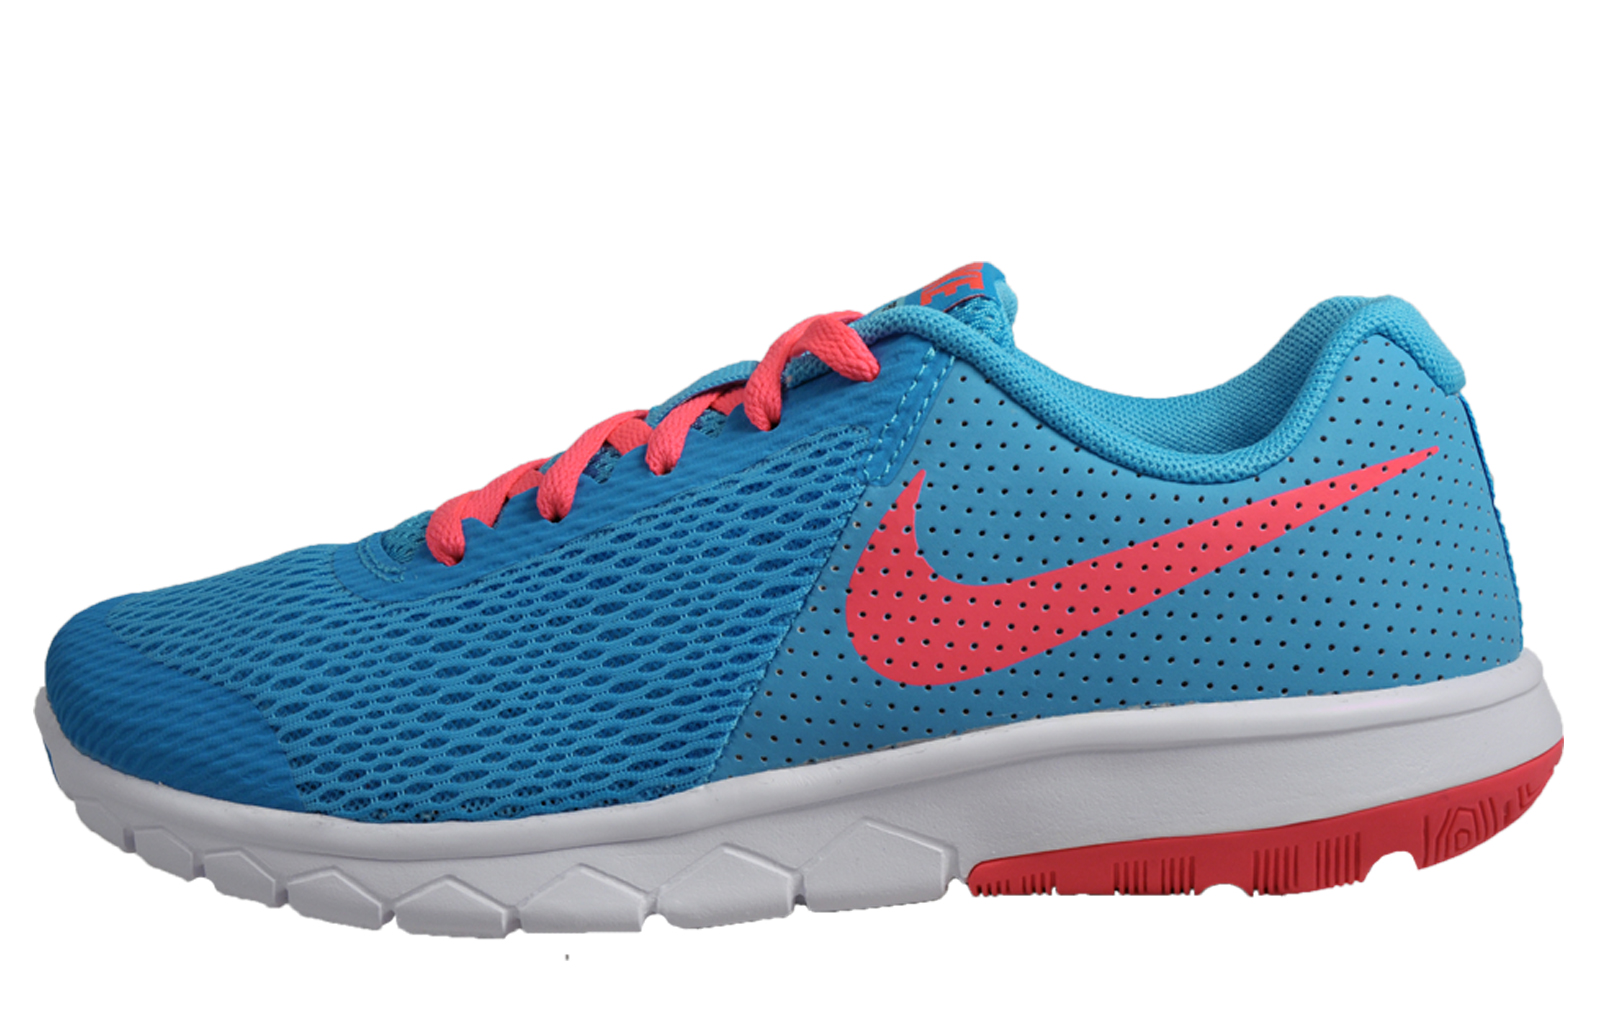 2caf7a8d74f0 Nike Flex Experience 5 Womens Girls Running Shoes Fitness Gym Trainers Blue